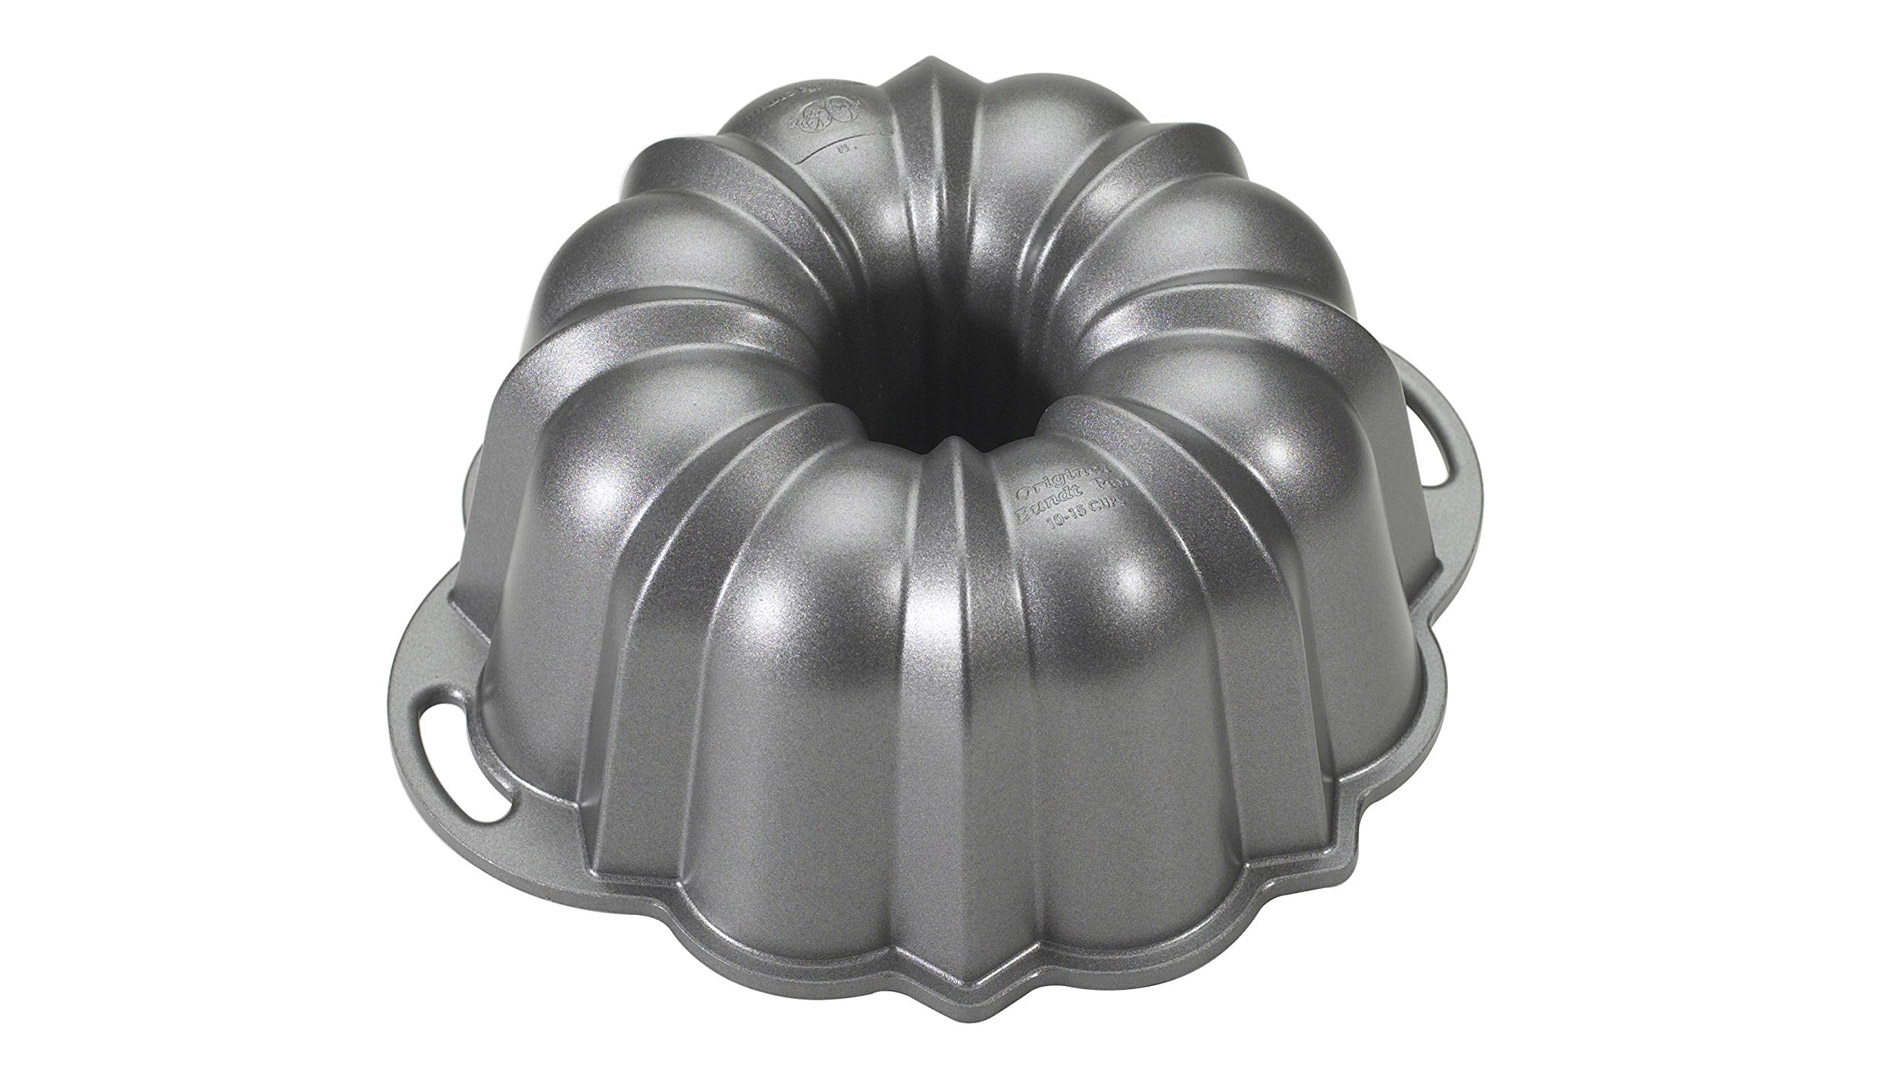 The Best Bundt Pans: Our Reviews